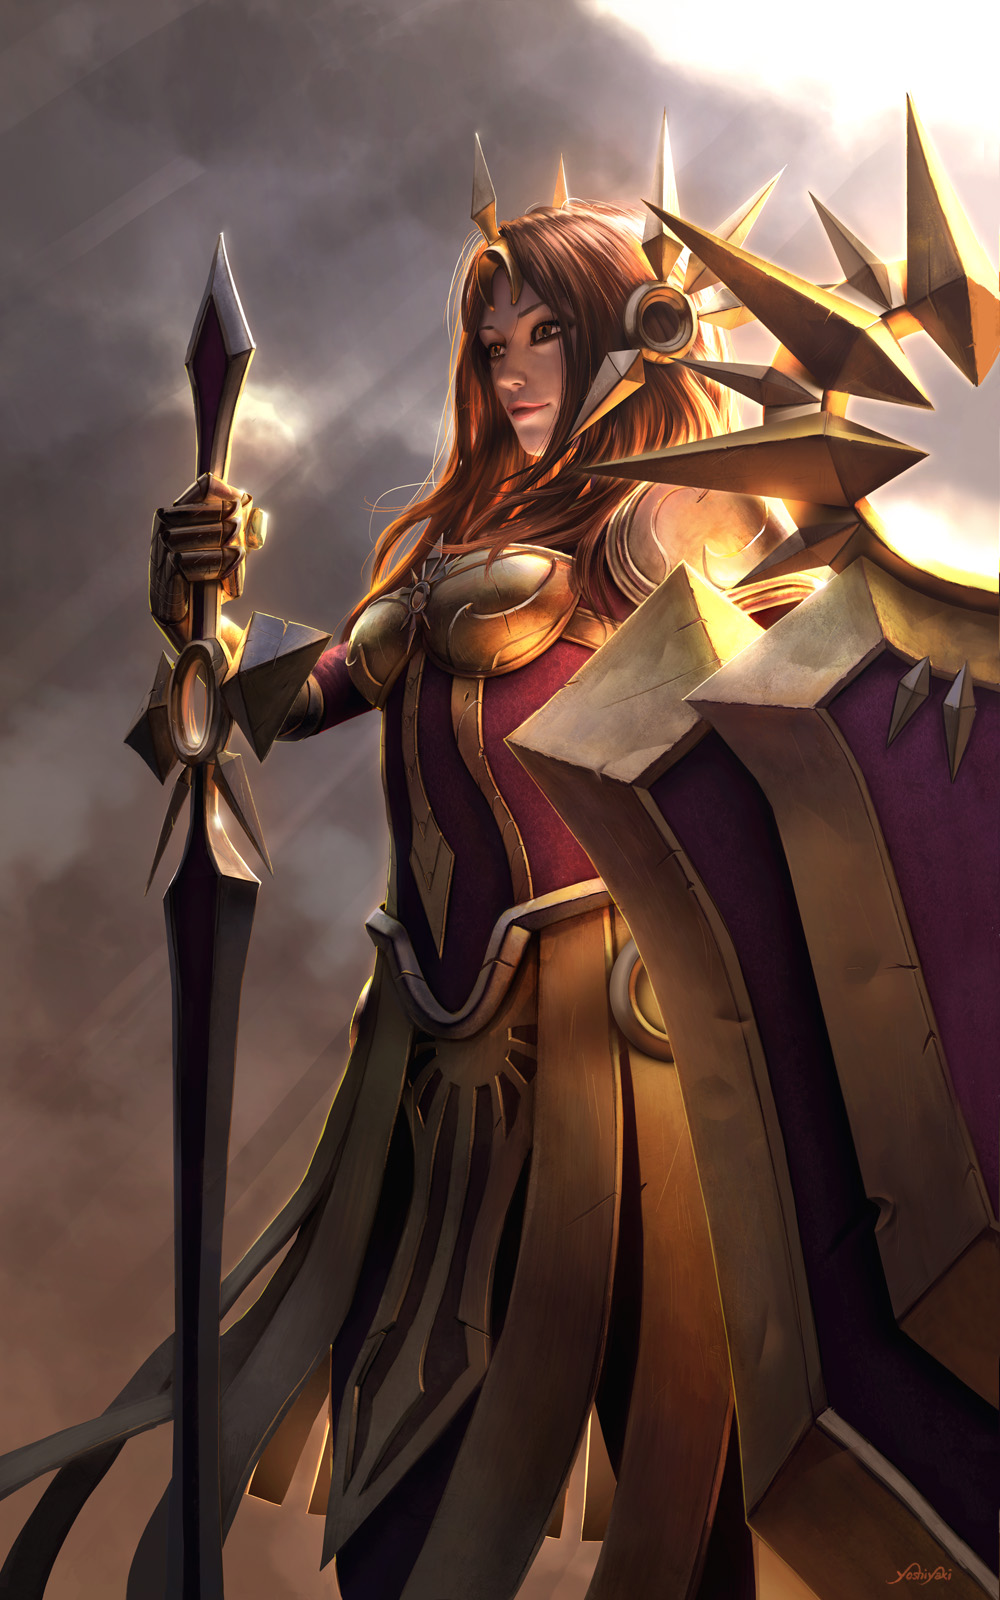 Leona - League of Legends by yoshiyaki on DeviantArt